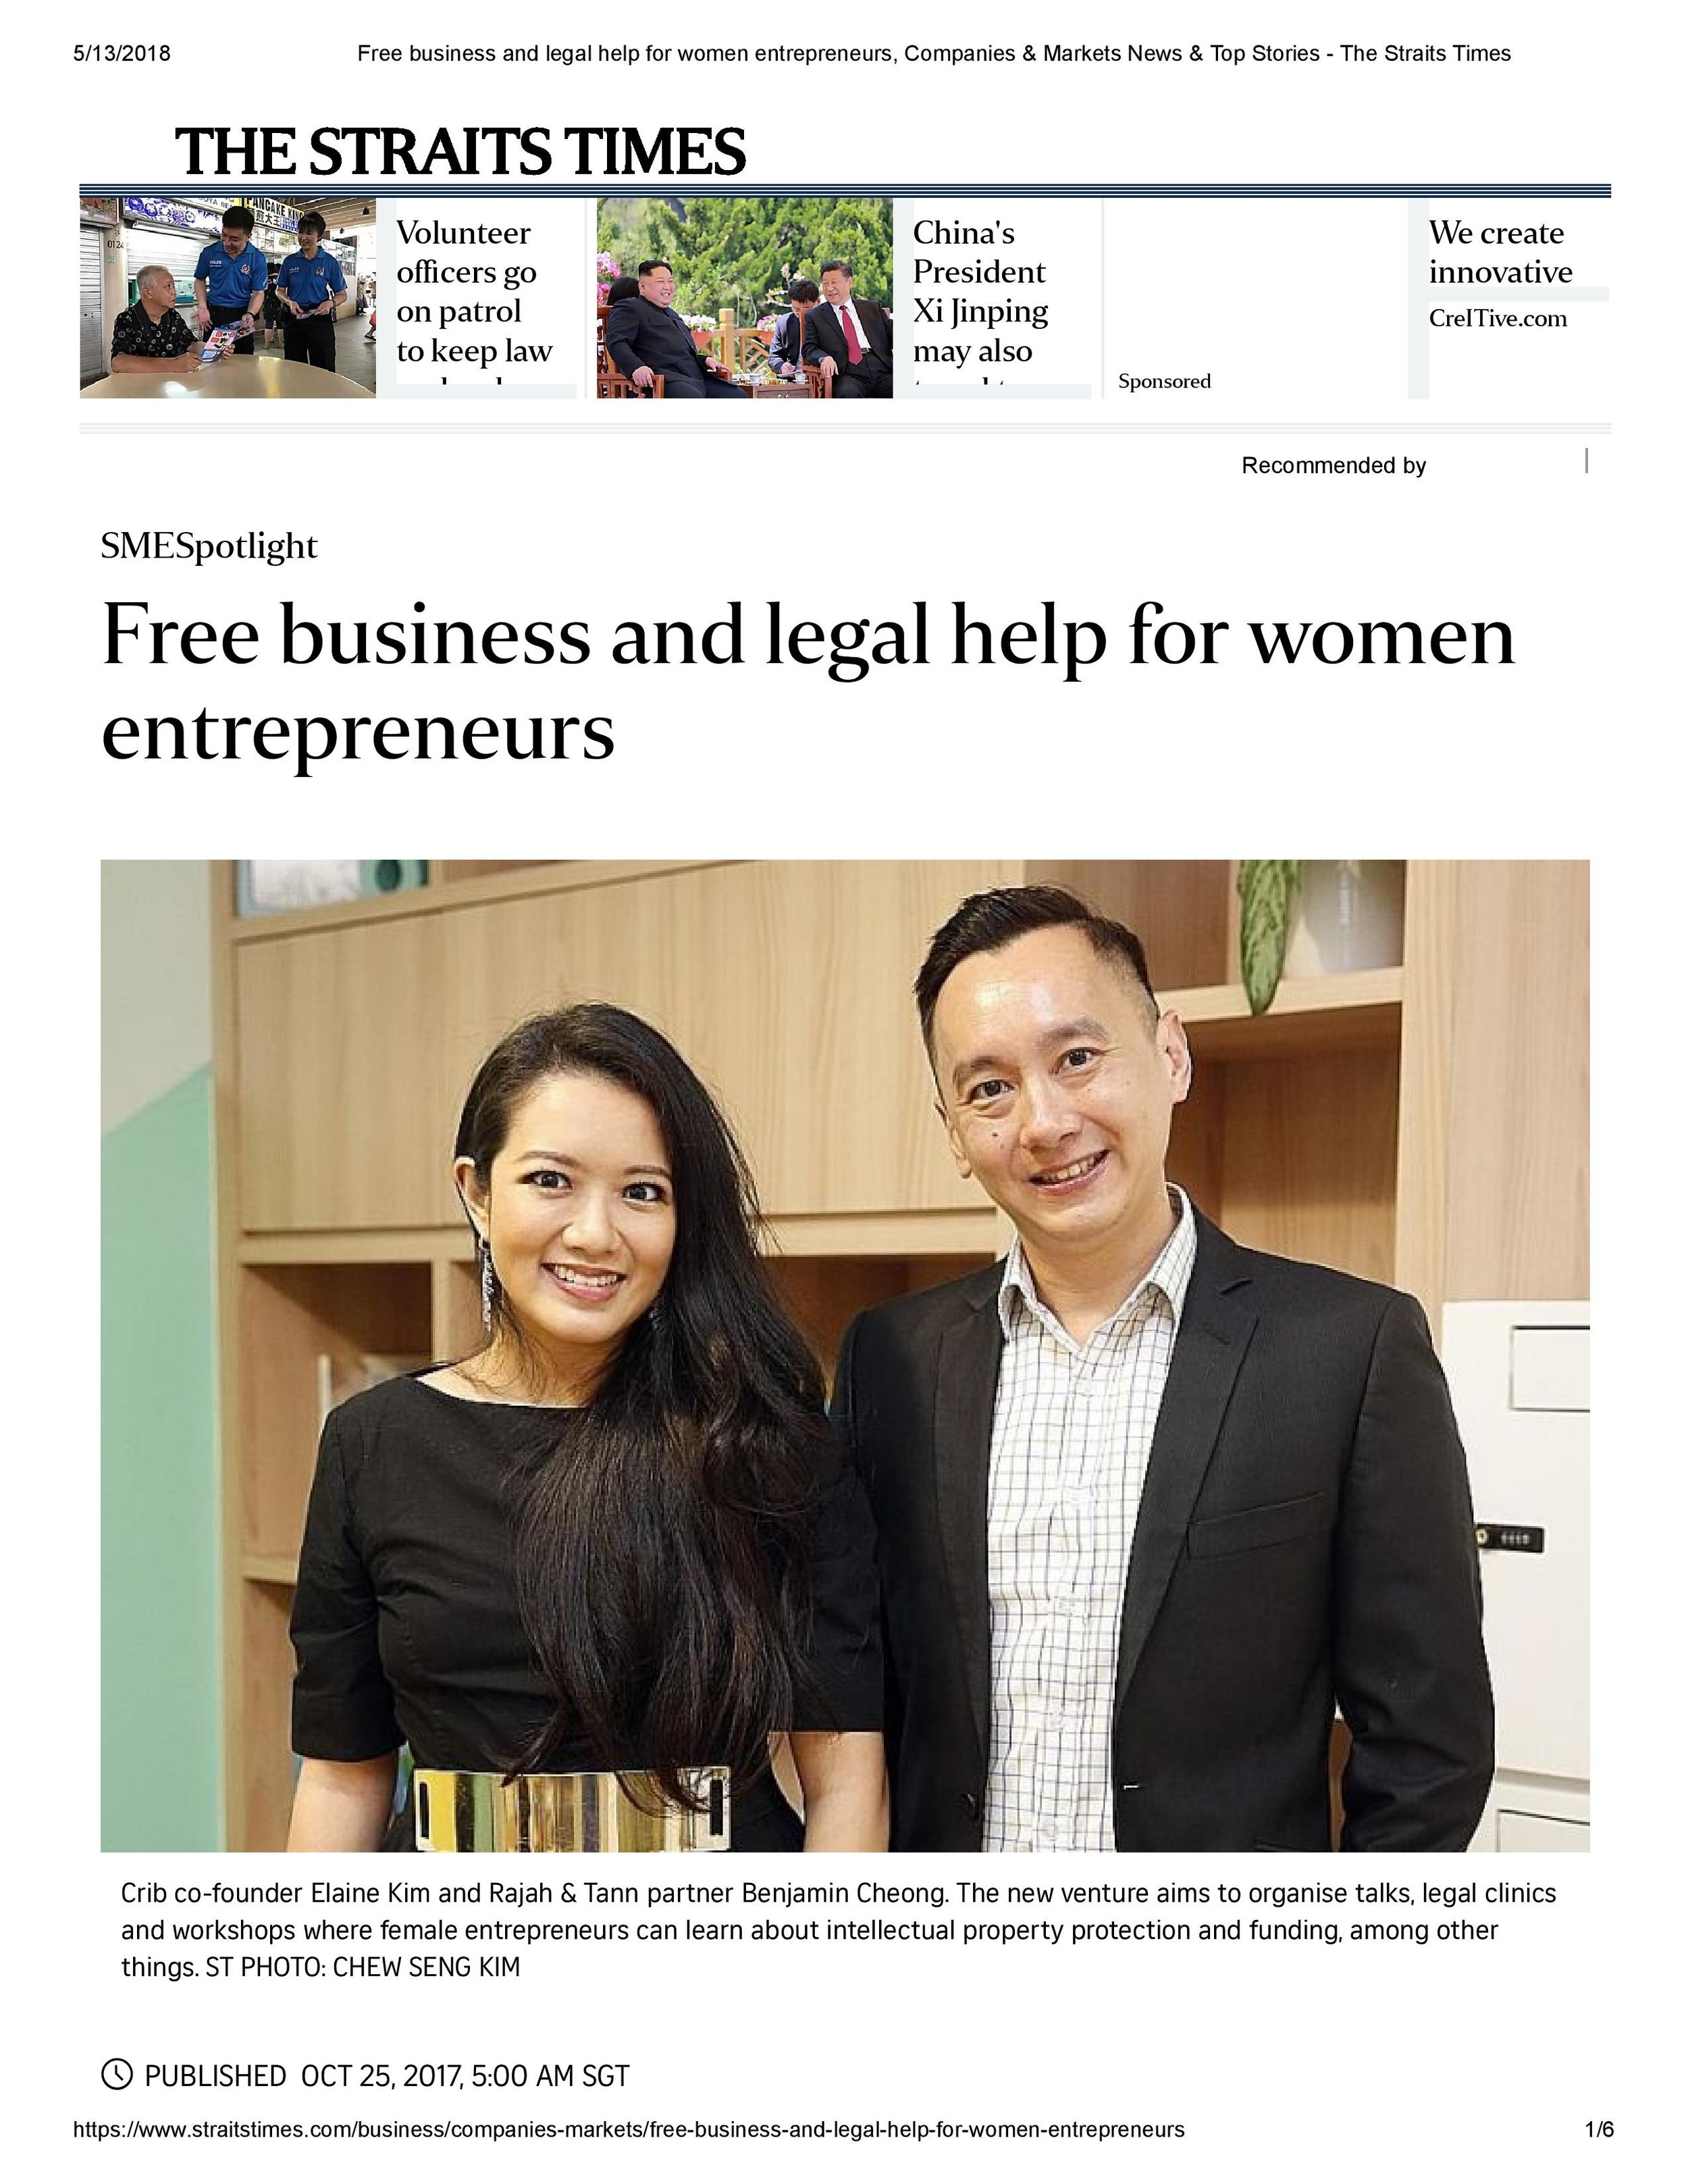 Free business and legal help for women entrepreneurs, Companies & Markets News & Top Stories - The Straits Times-pages-1-3-page-001.jpg